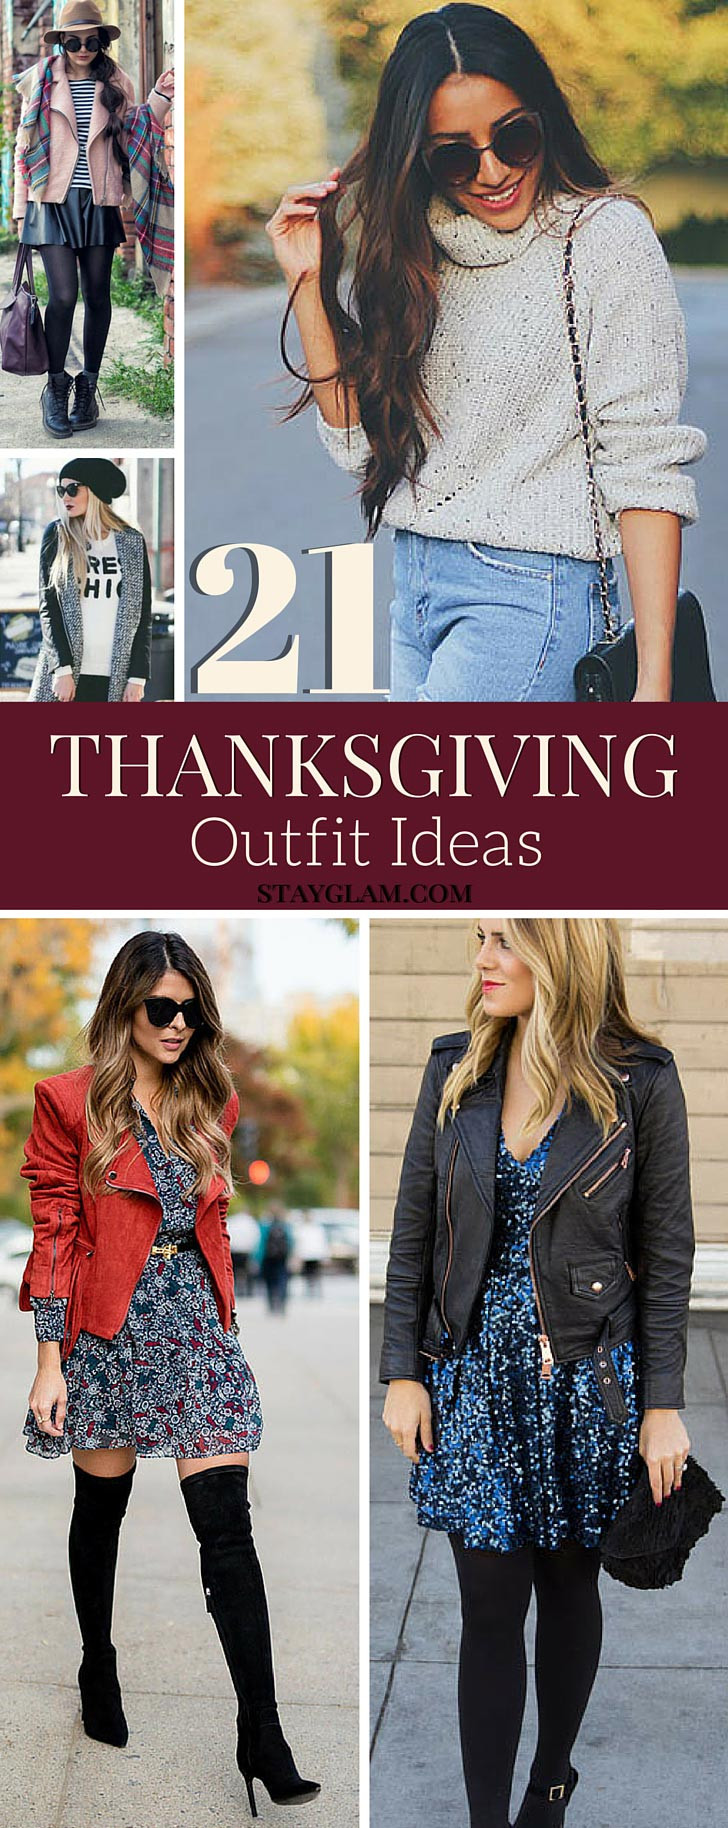 21 Bequeme stylische Thanksgiving-Outfits